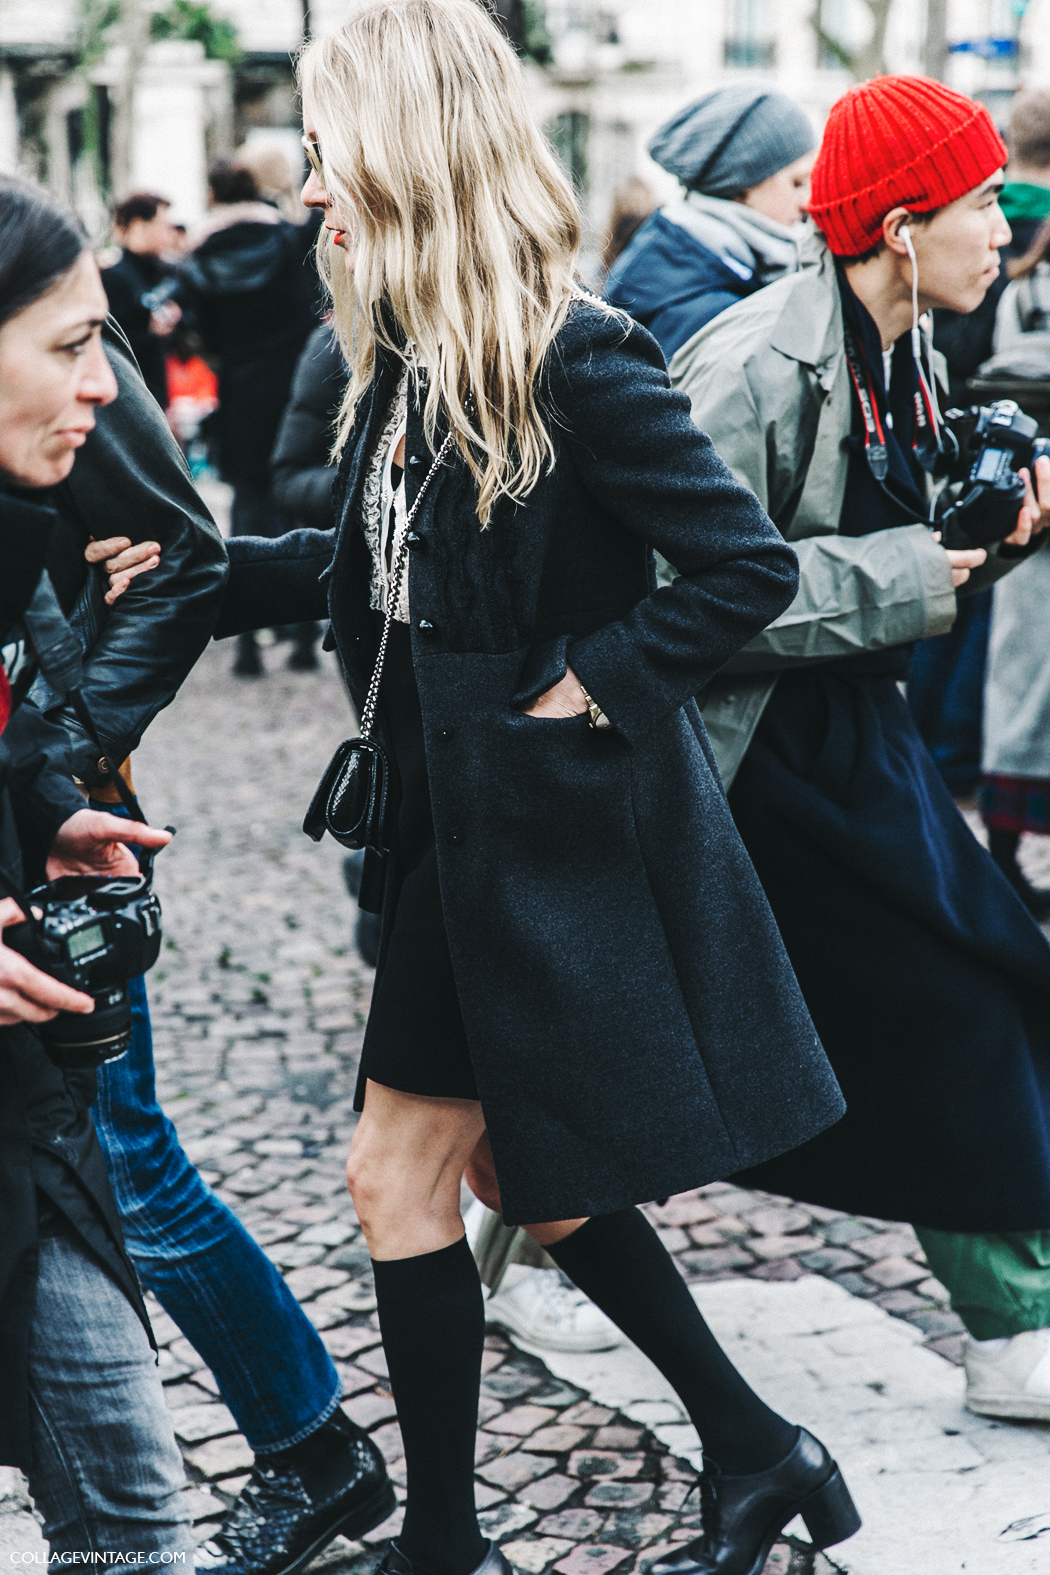 PFW-Paris_Fashion_Week_Fall_2016-Street_Style-Collage_Vintage-Miu_Miu-Chloe_Sevigny-Socks-